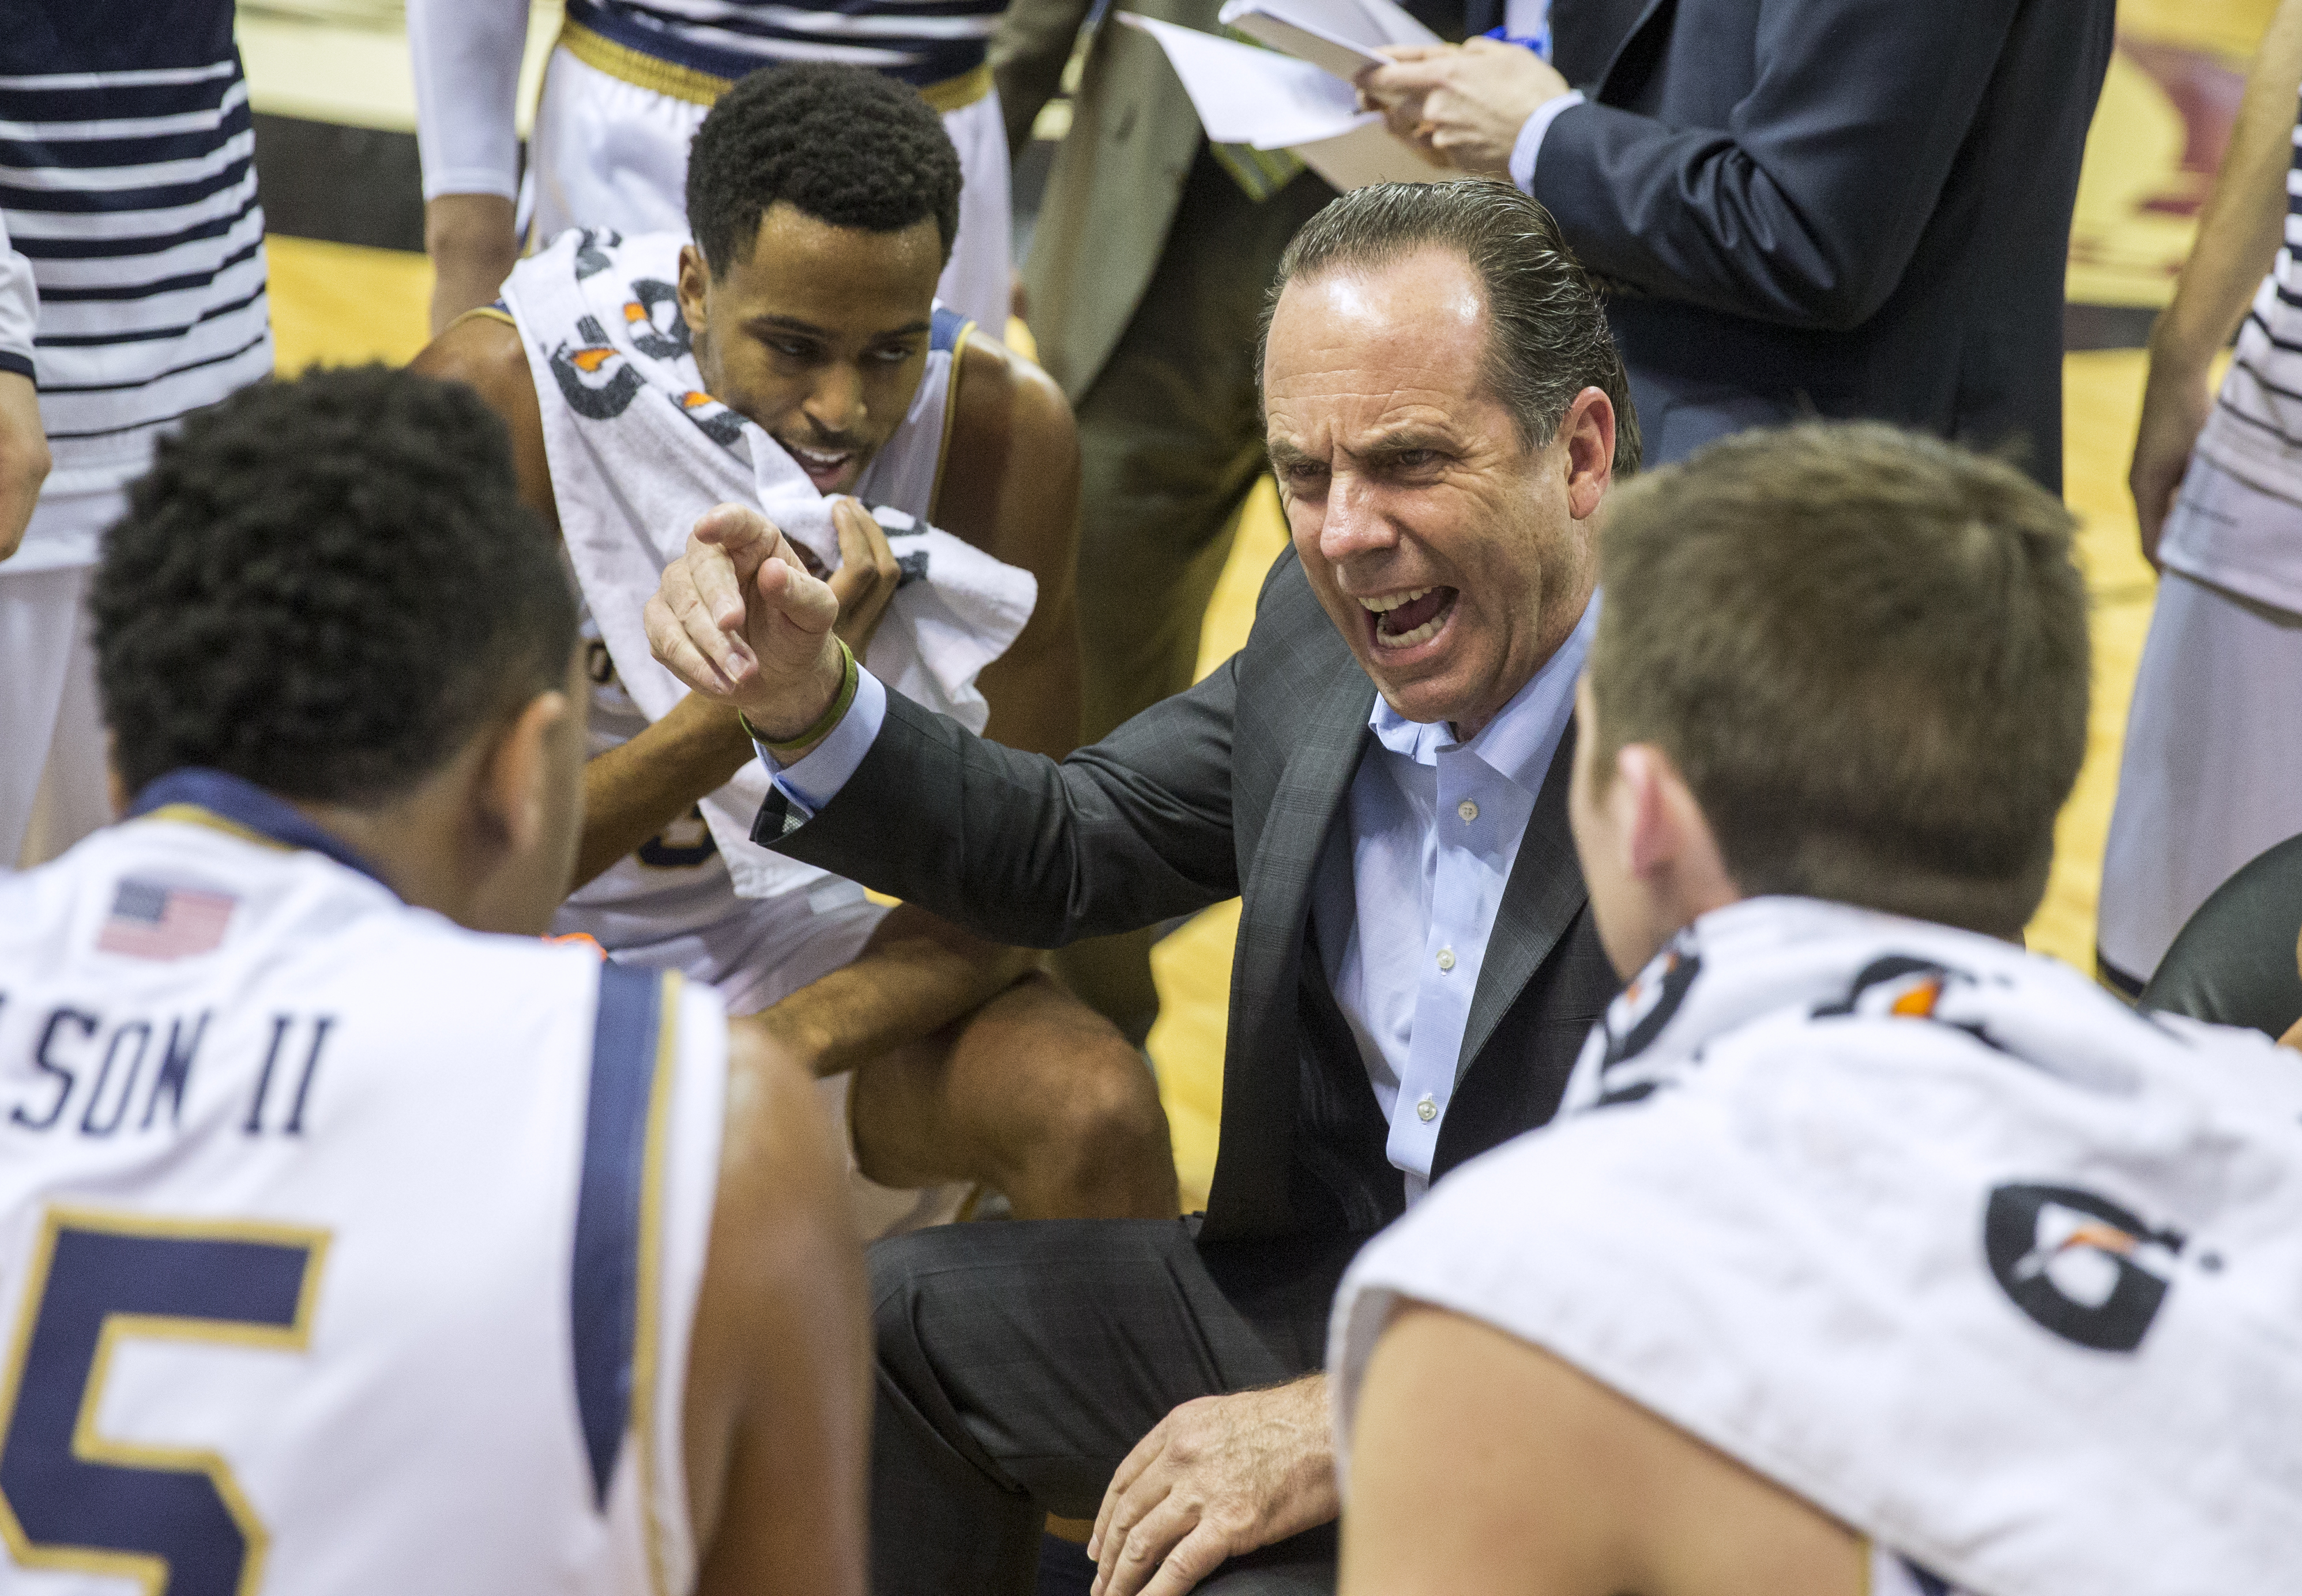 Notre Dame head coach Mike Brey instructs his team during the first half of an NCAA college basketball game against Florida State in Tallahassee, Fla., Saturday, Feb. 27, 2016. (AP Photo/Mark Wallheiser)